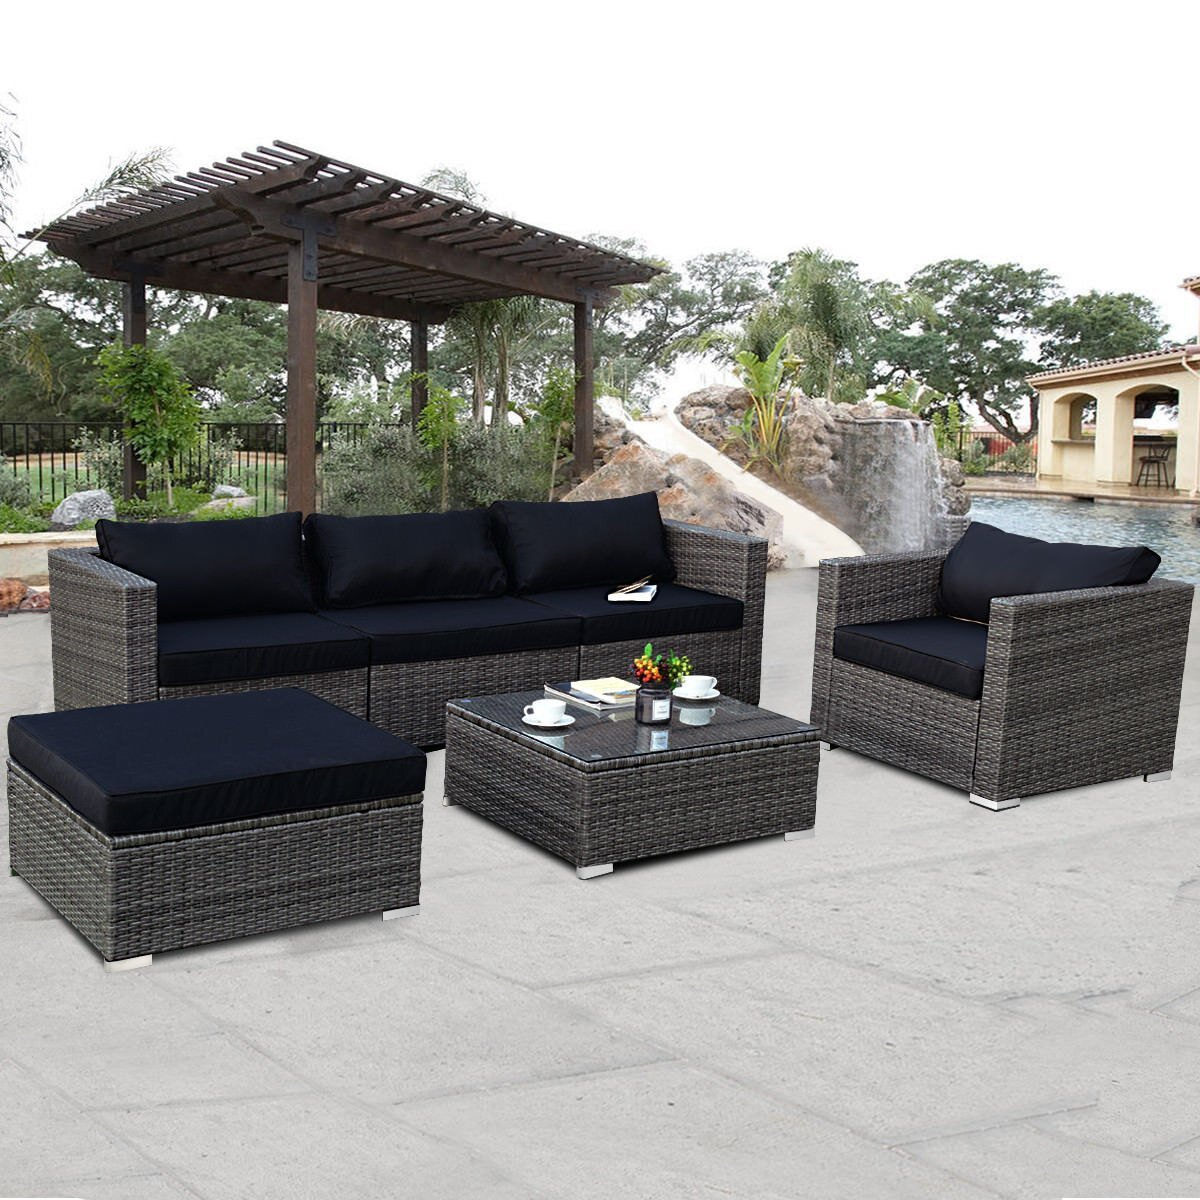 Quality Outdoor Patio Furniture Store In Surprise Az Absolutely Patio